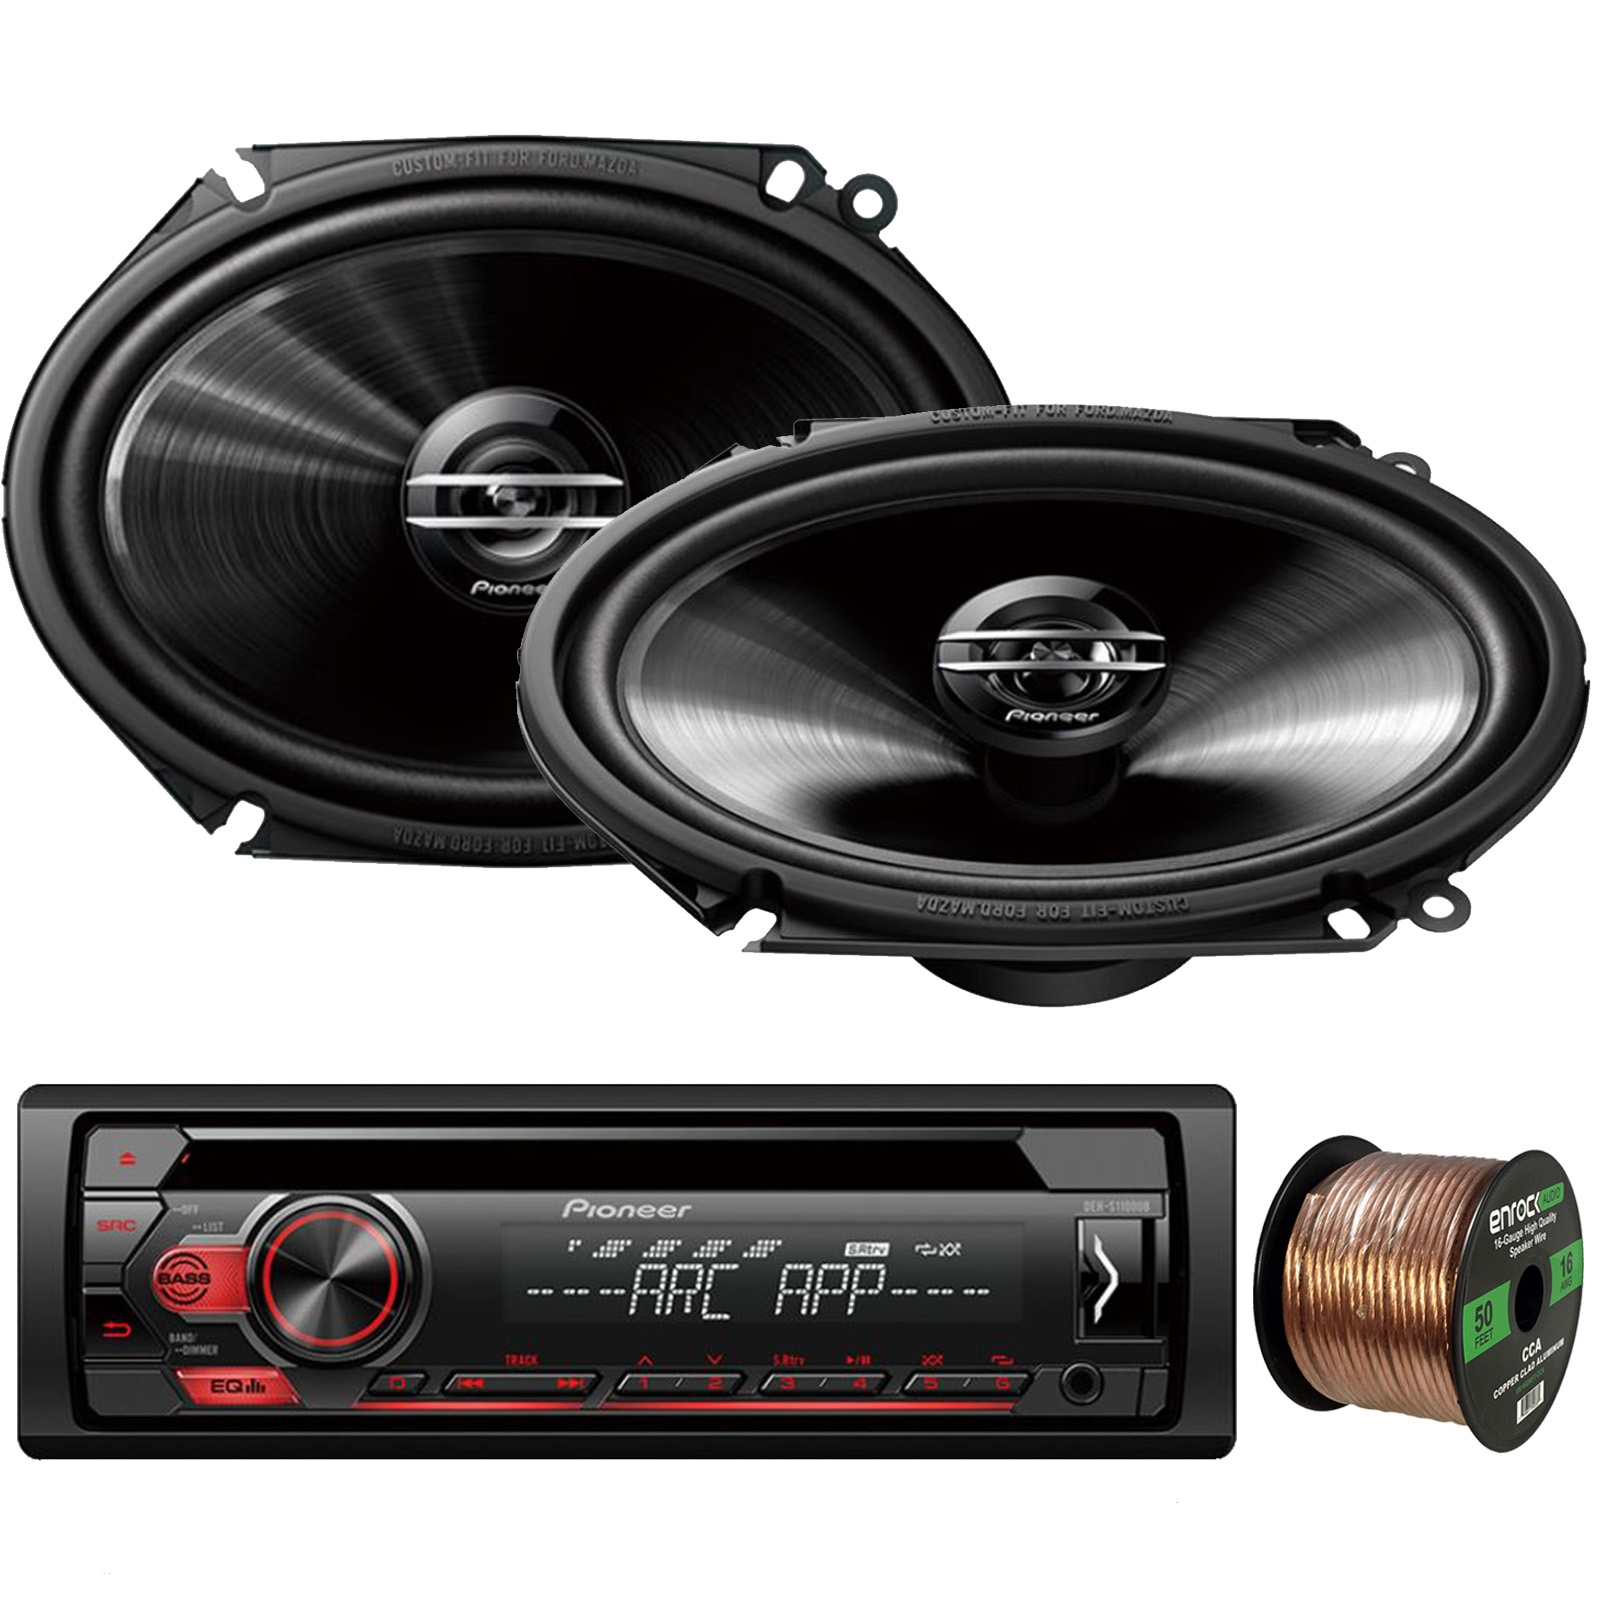 "Pioneer DEH-S1100UB Single-DIN CD Player AM/FM Car Stereo Receiver, 2 x Pioneer G-Series Car Audio 6x8"" 250W 2-Way Car Speakers, Enrock Audio 16-Gauge 50Ft. CCA Speaker Wire"